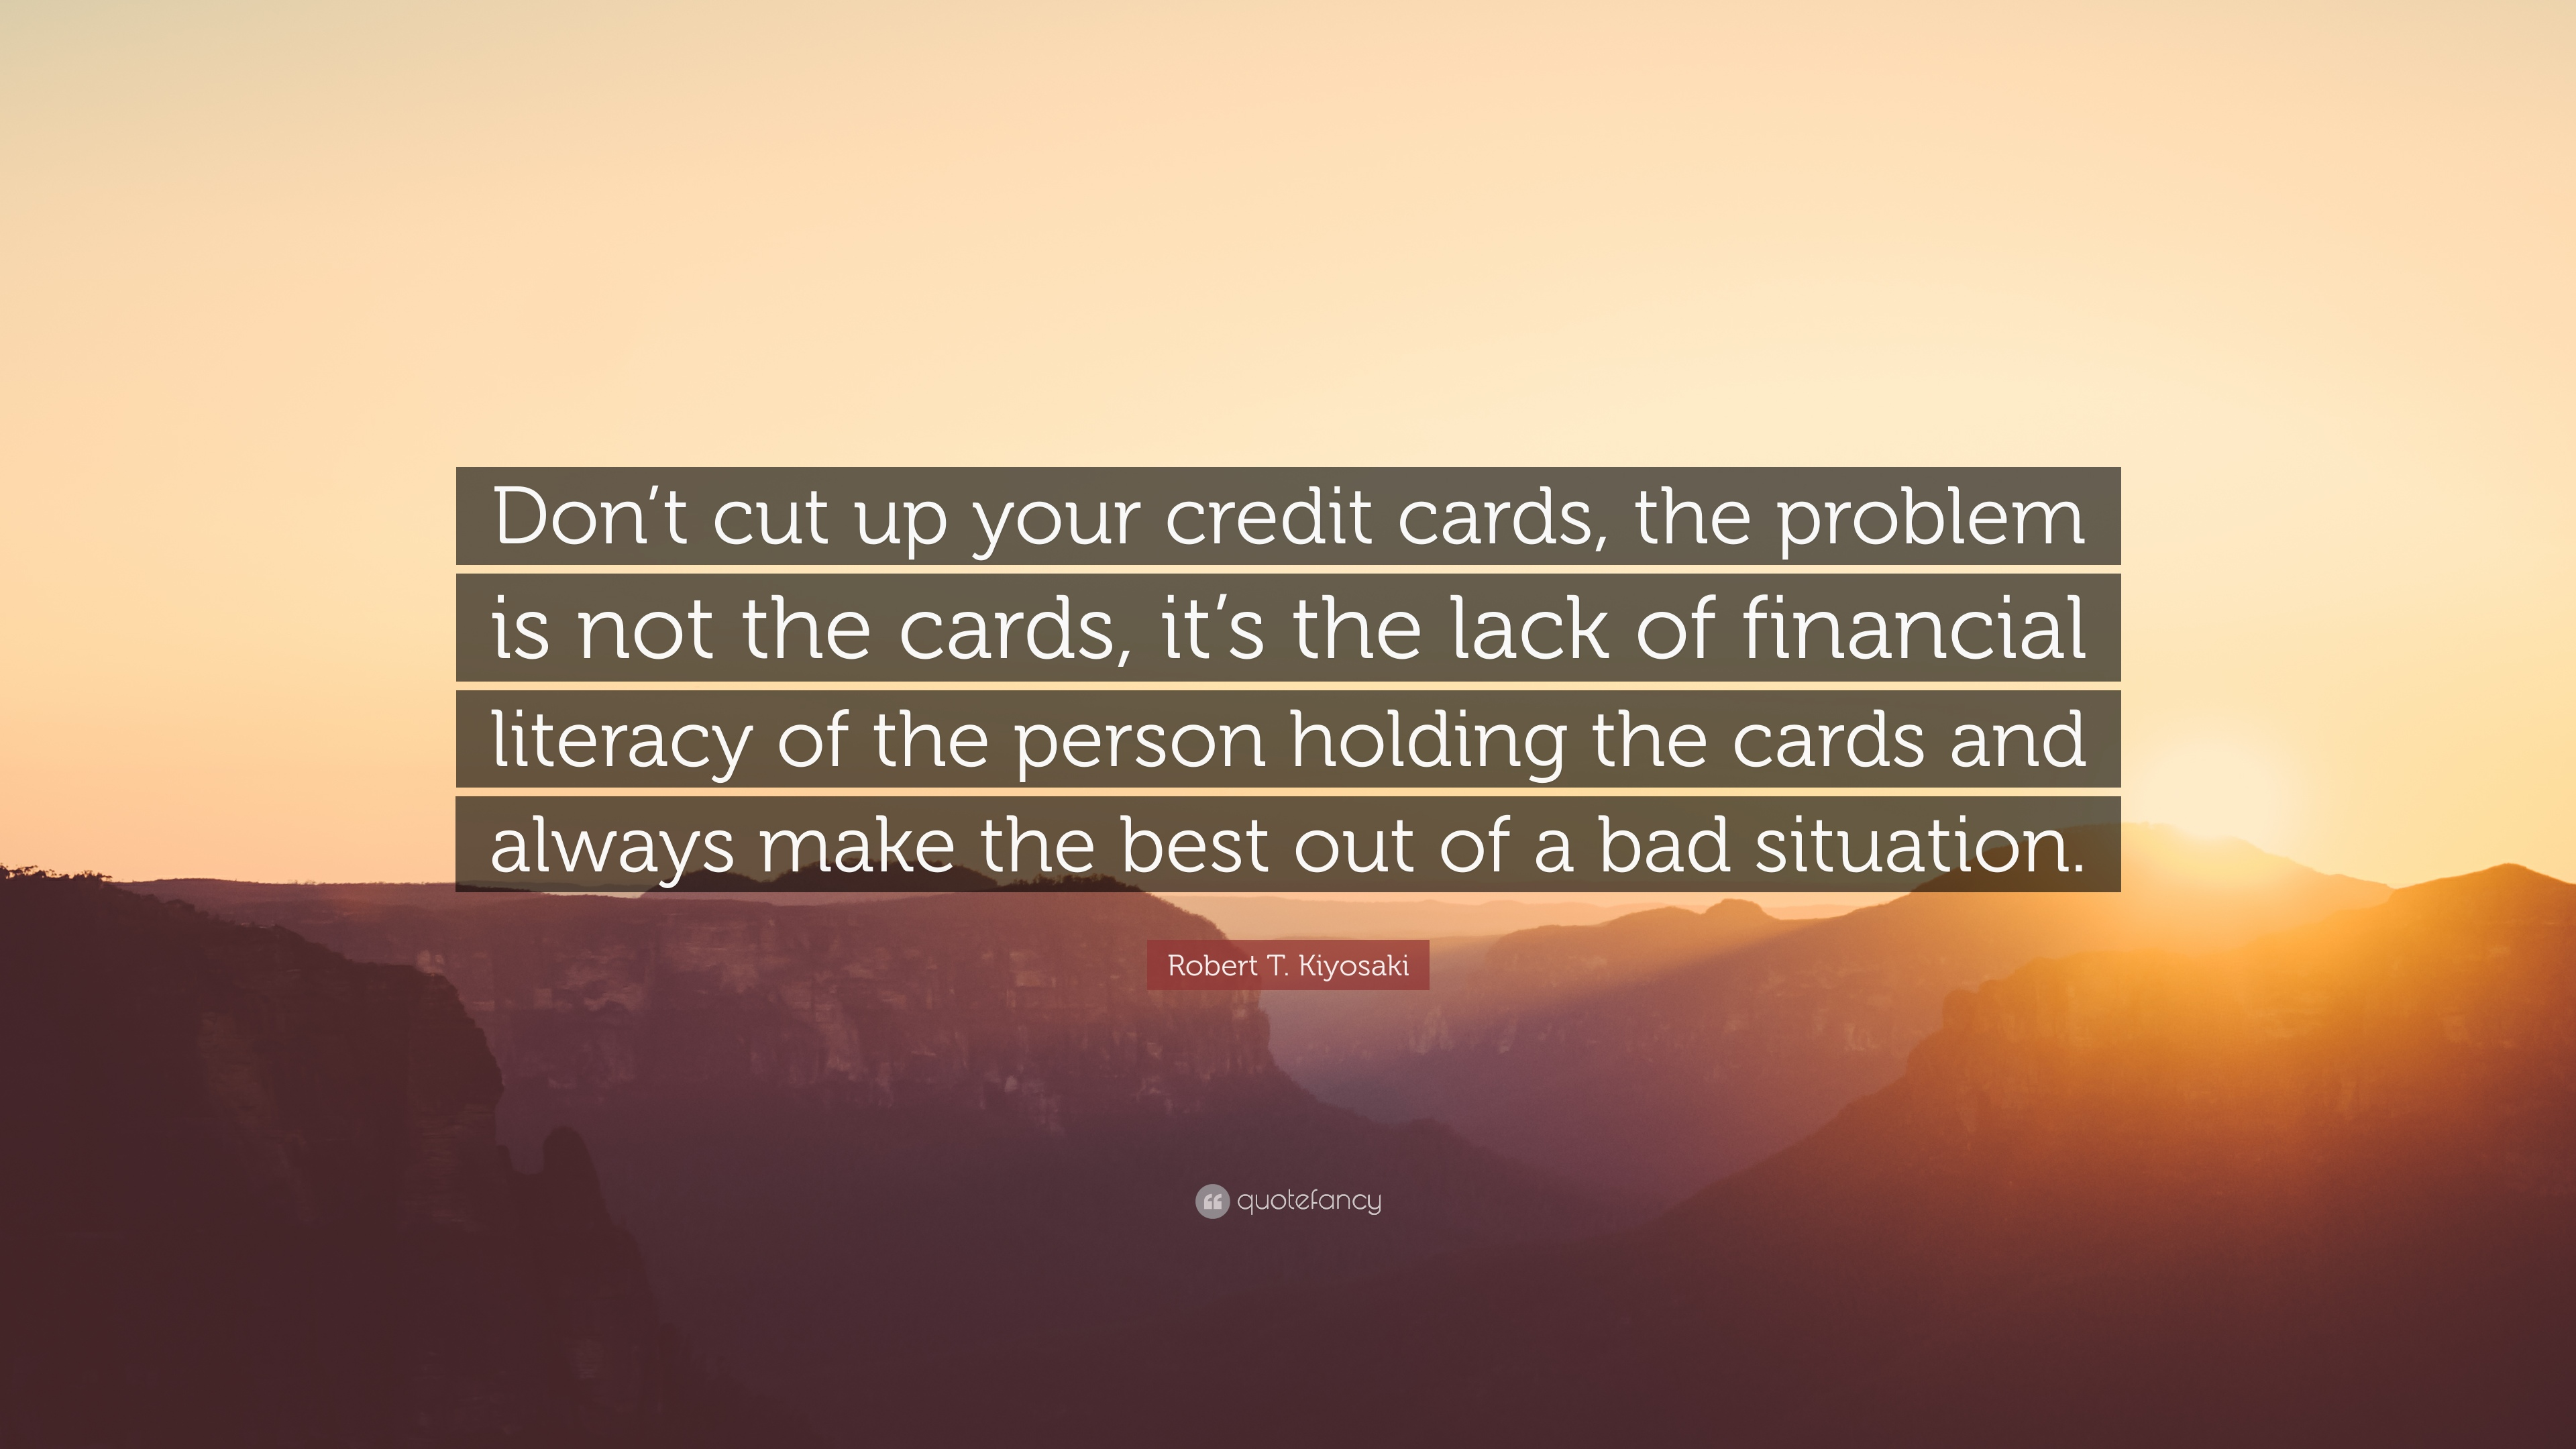 Financial Literacy Quotes 37598 Softblog